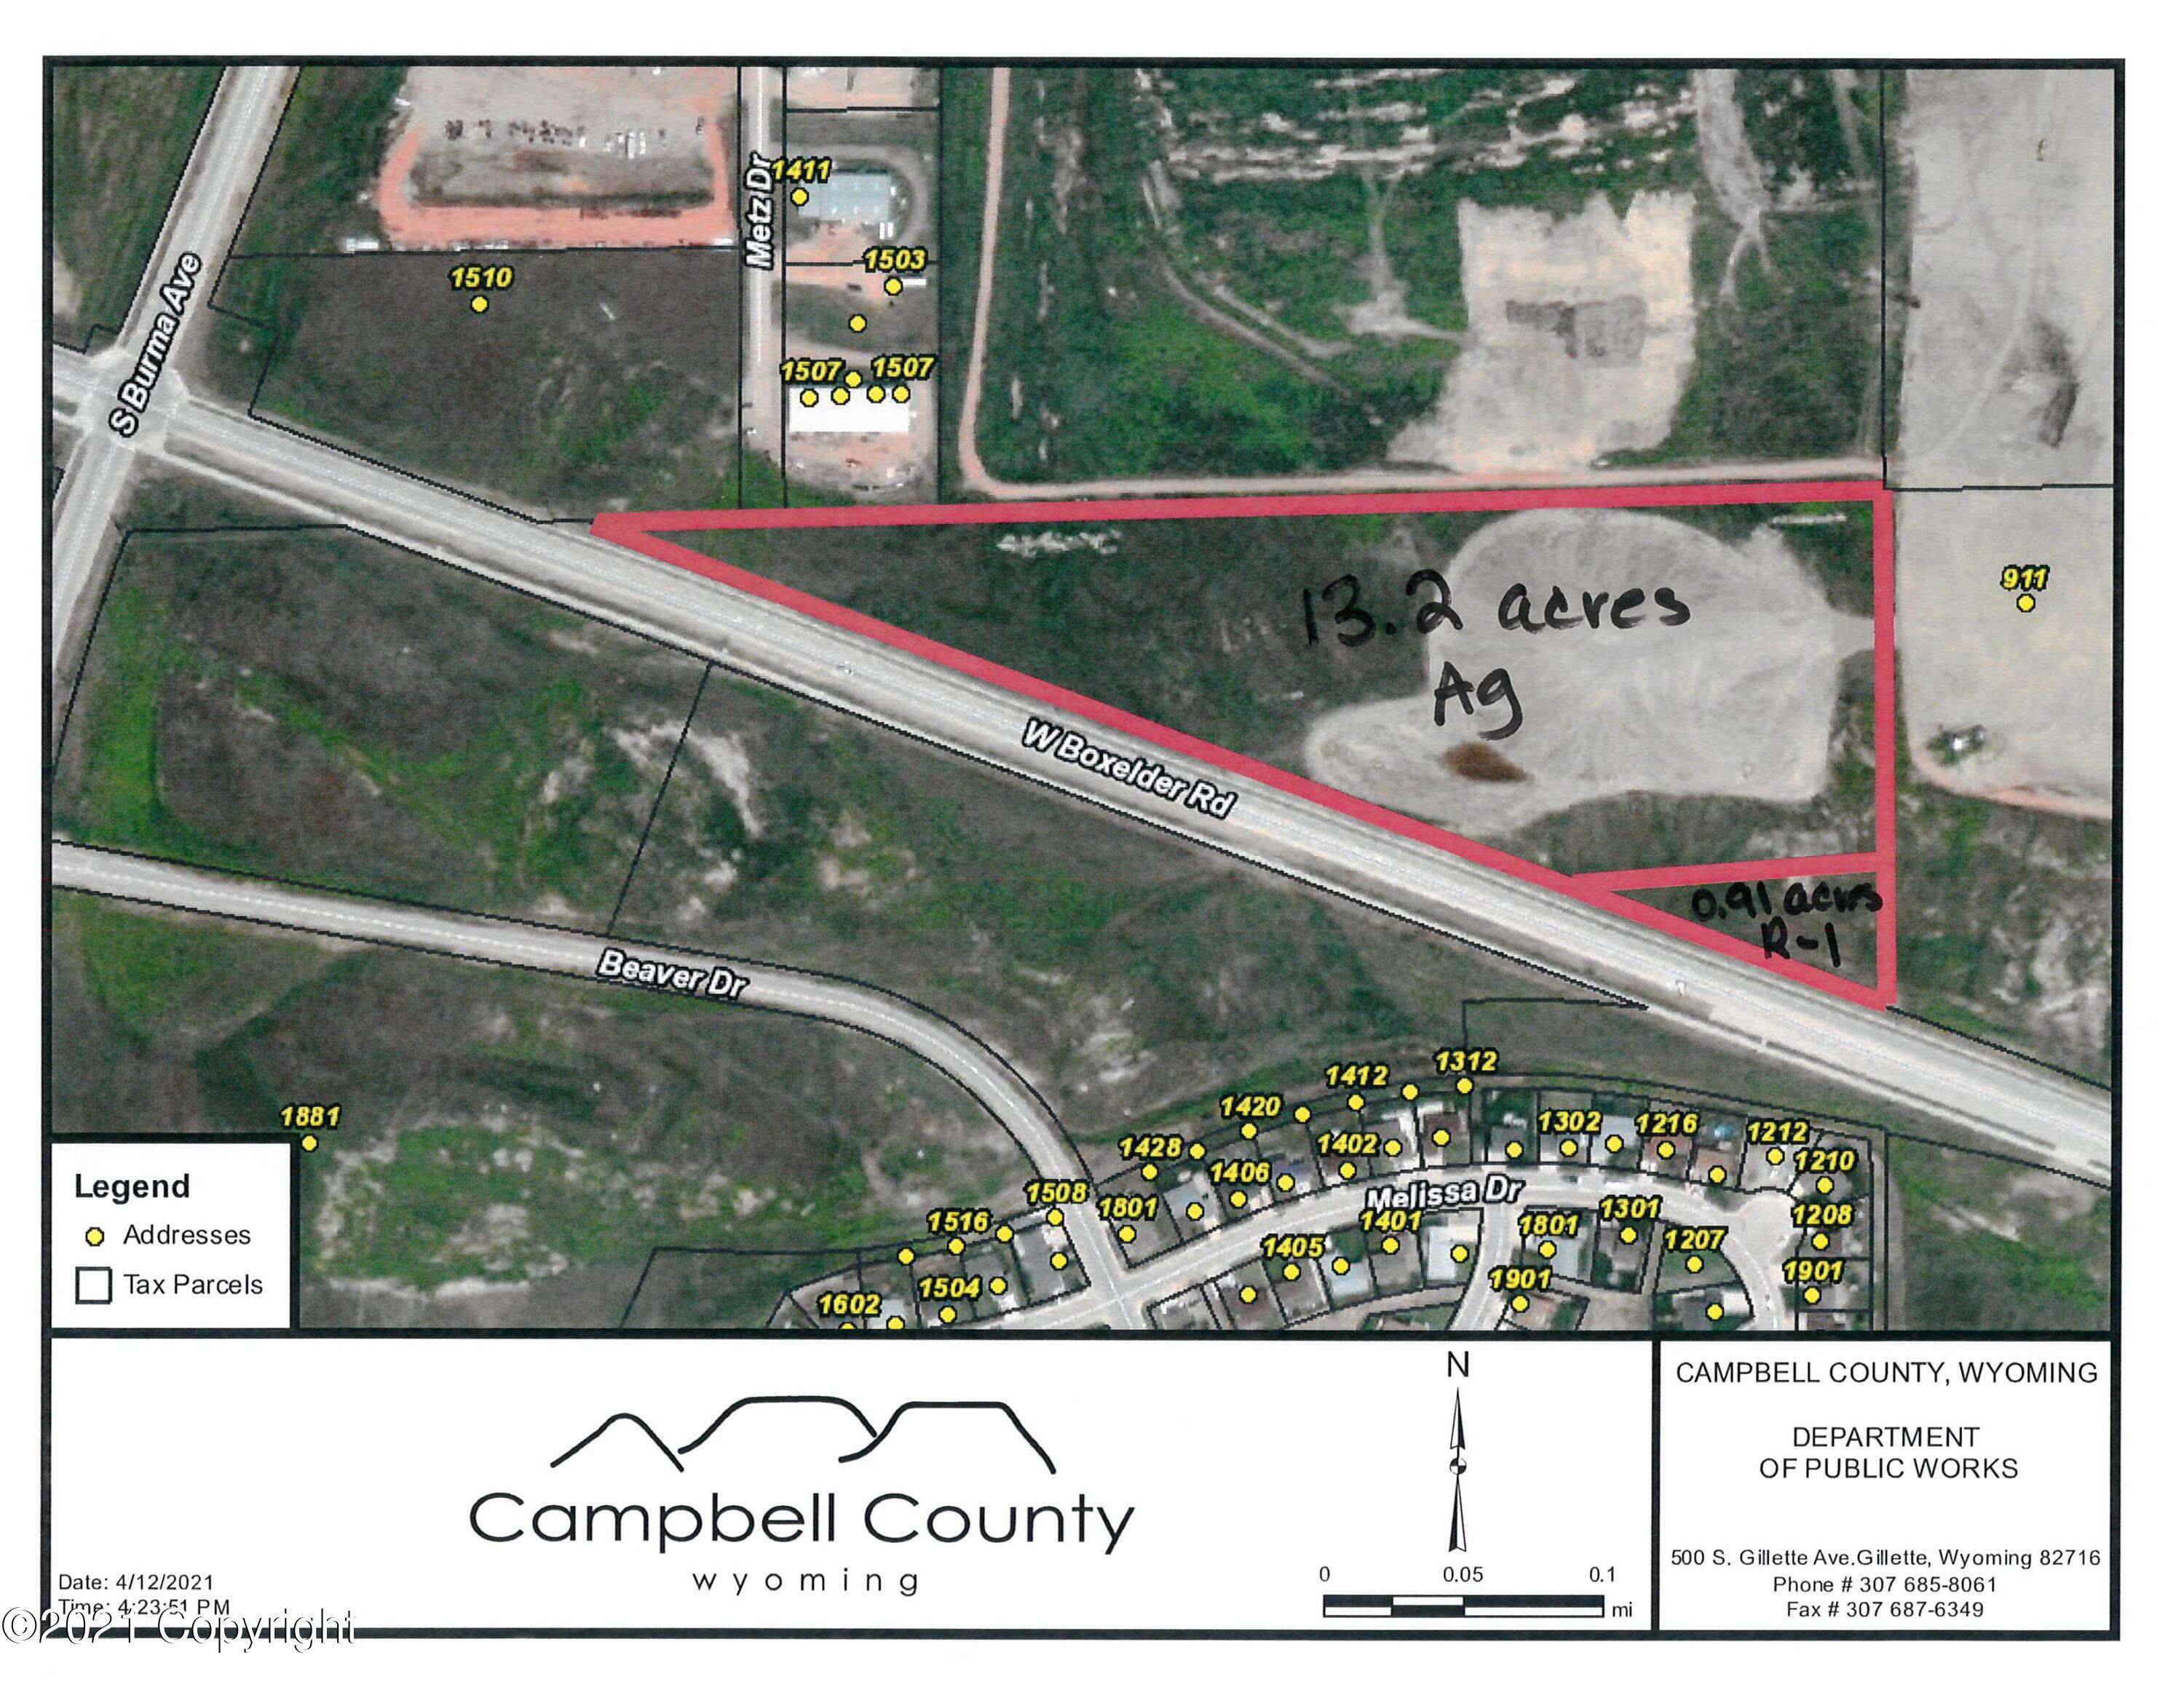 Located on the north side of Boxelder Rd. near Burma Rd.  13.2 acres county land zoned Ag and .91 acres zoned R-1 within city limits.  Buyer could apply with county/city to change zoning.   City water and electric along south side of property Would require annexation to tap into city water/electric.